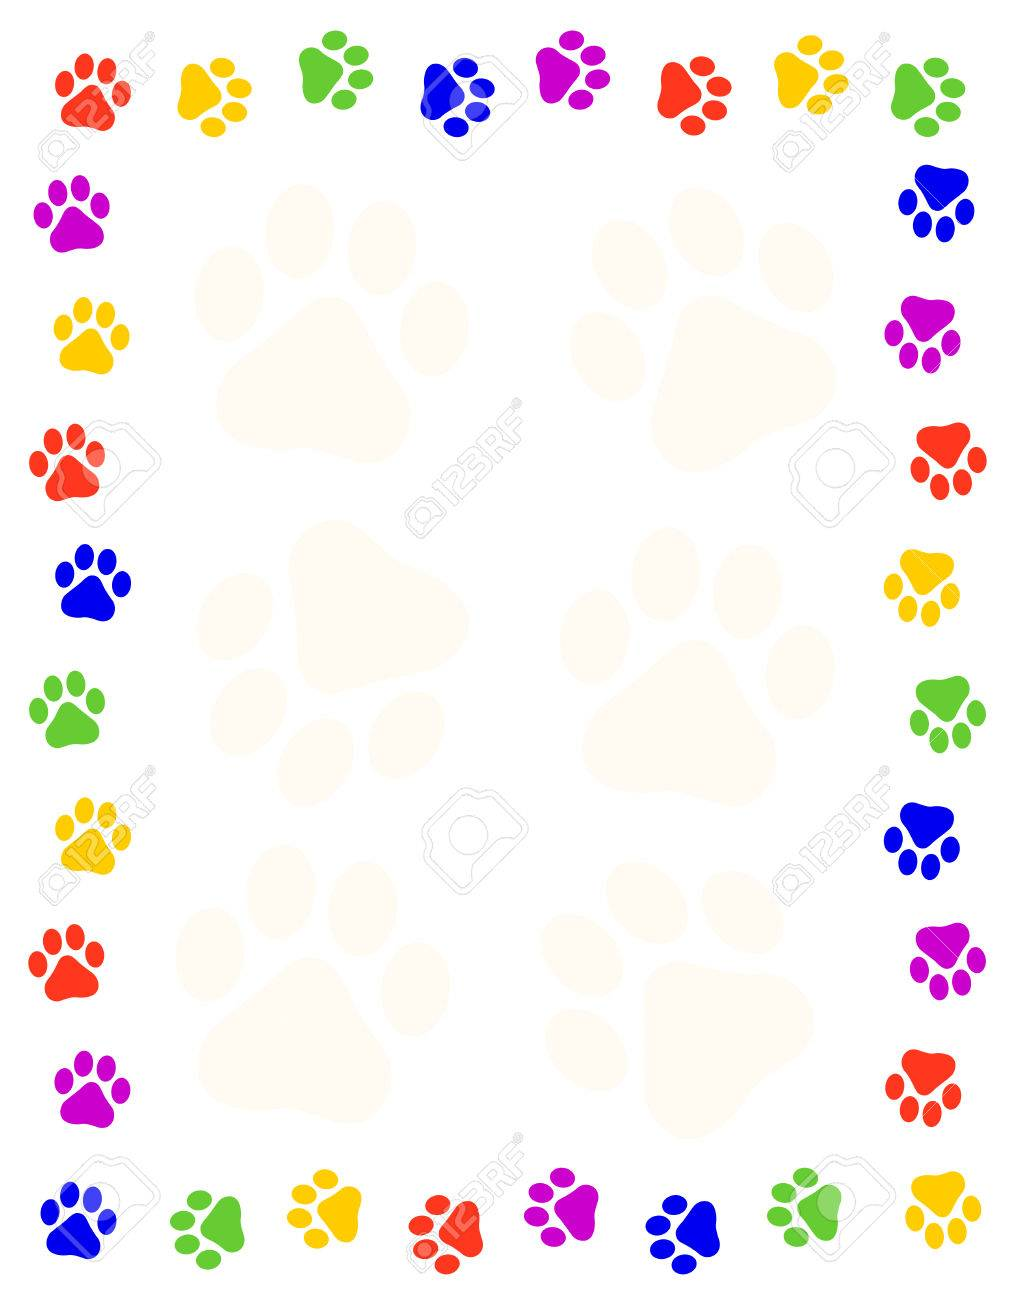 Colorful Paw Prints Frame / Border Stock Photo, Picture And Royalty ...